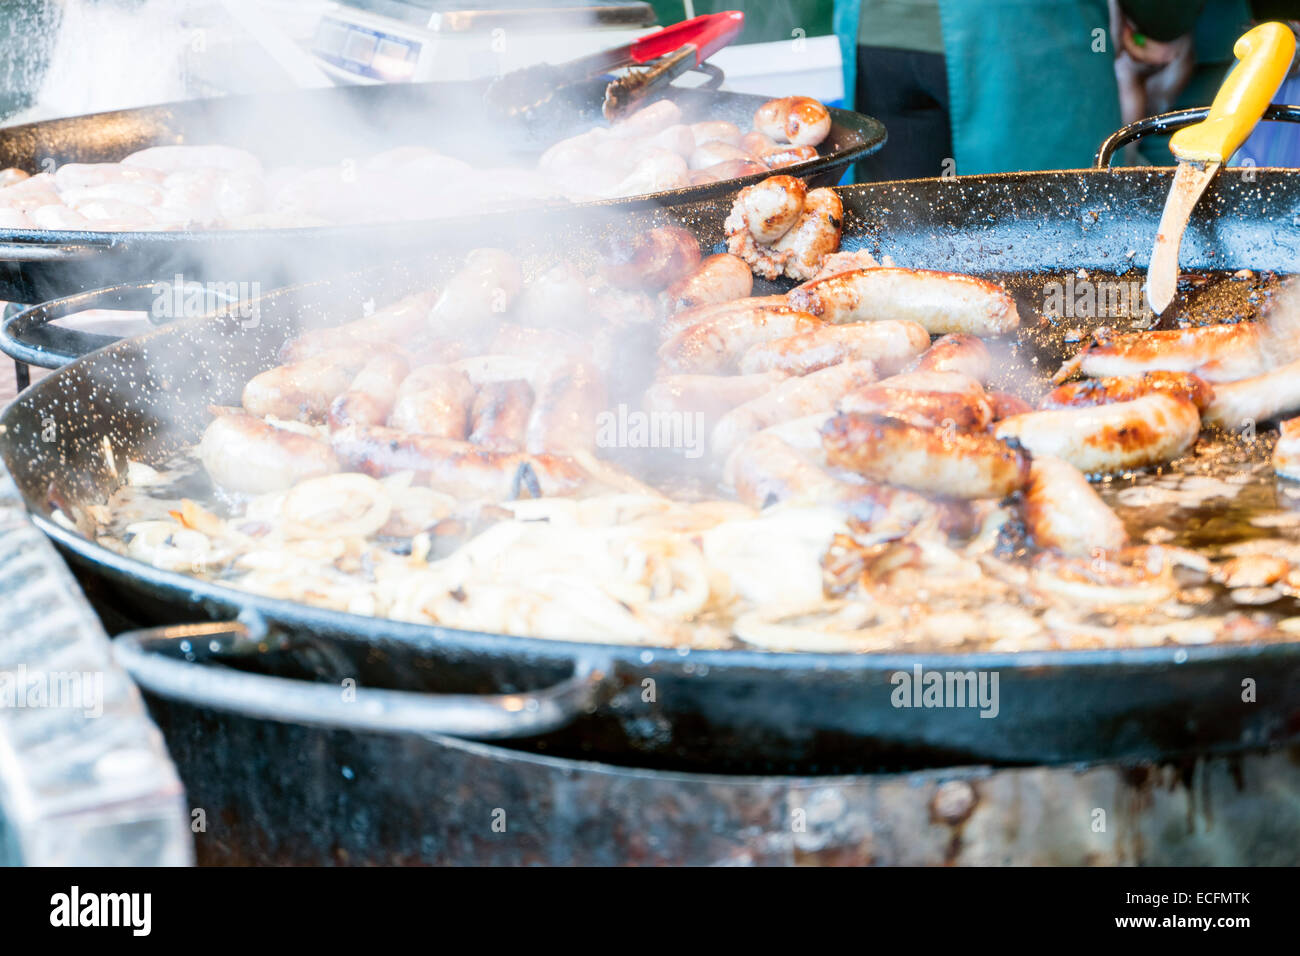 Sausages & onions cooking in a giant frying pan, outside catering, UK. - Stock Image